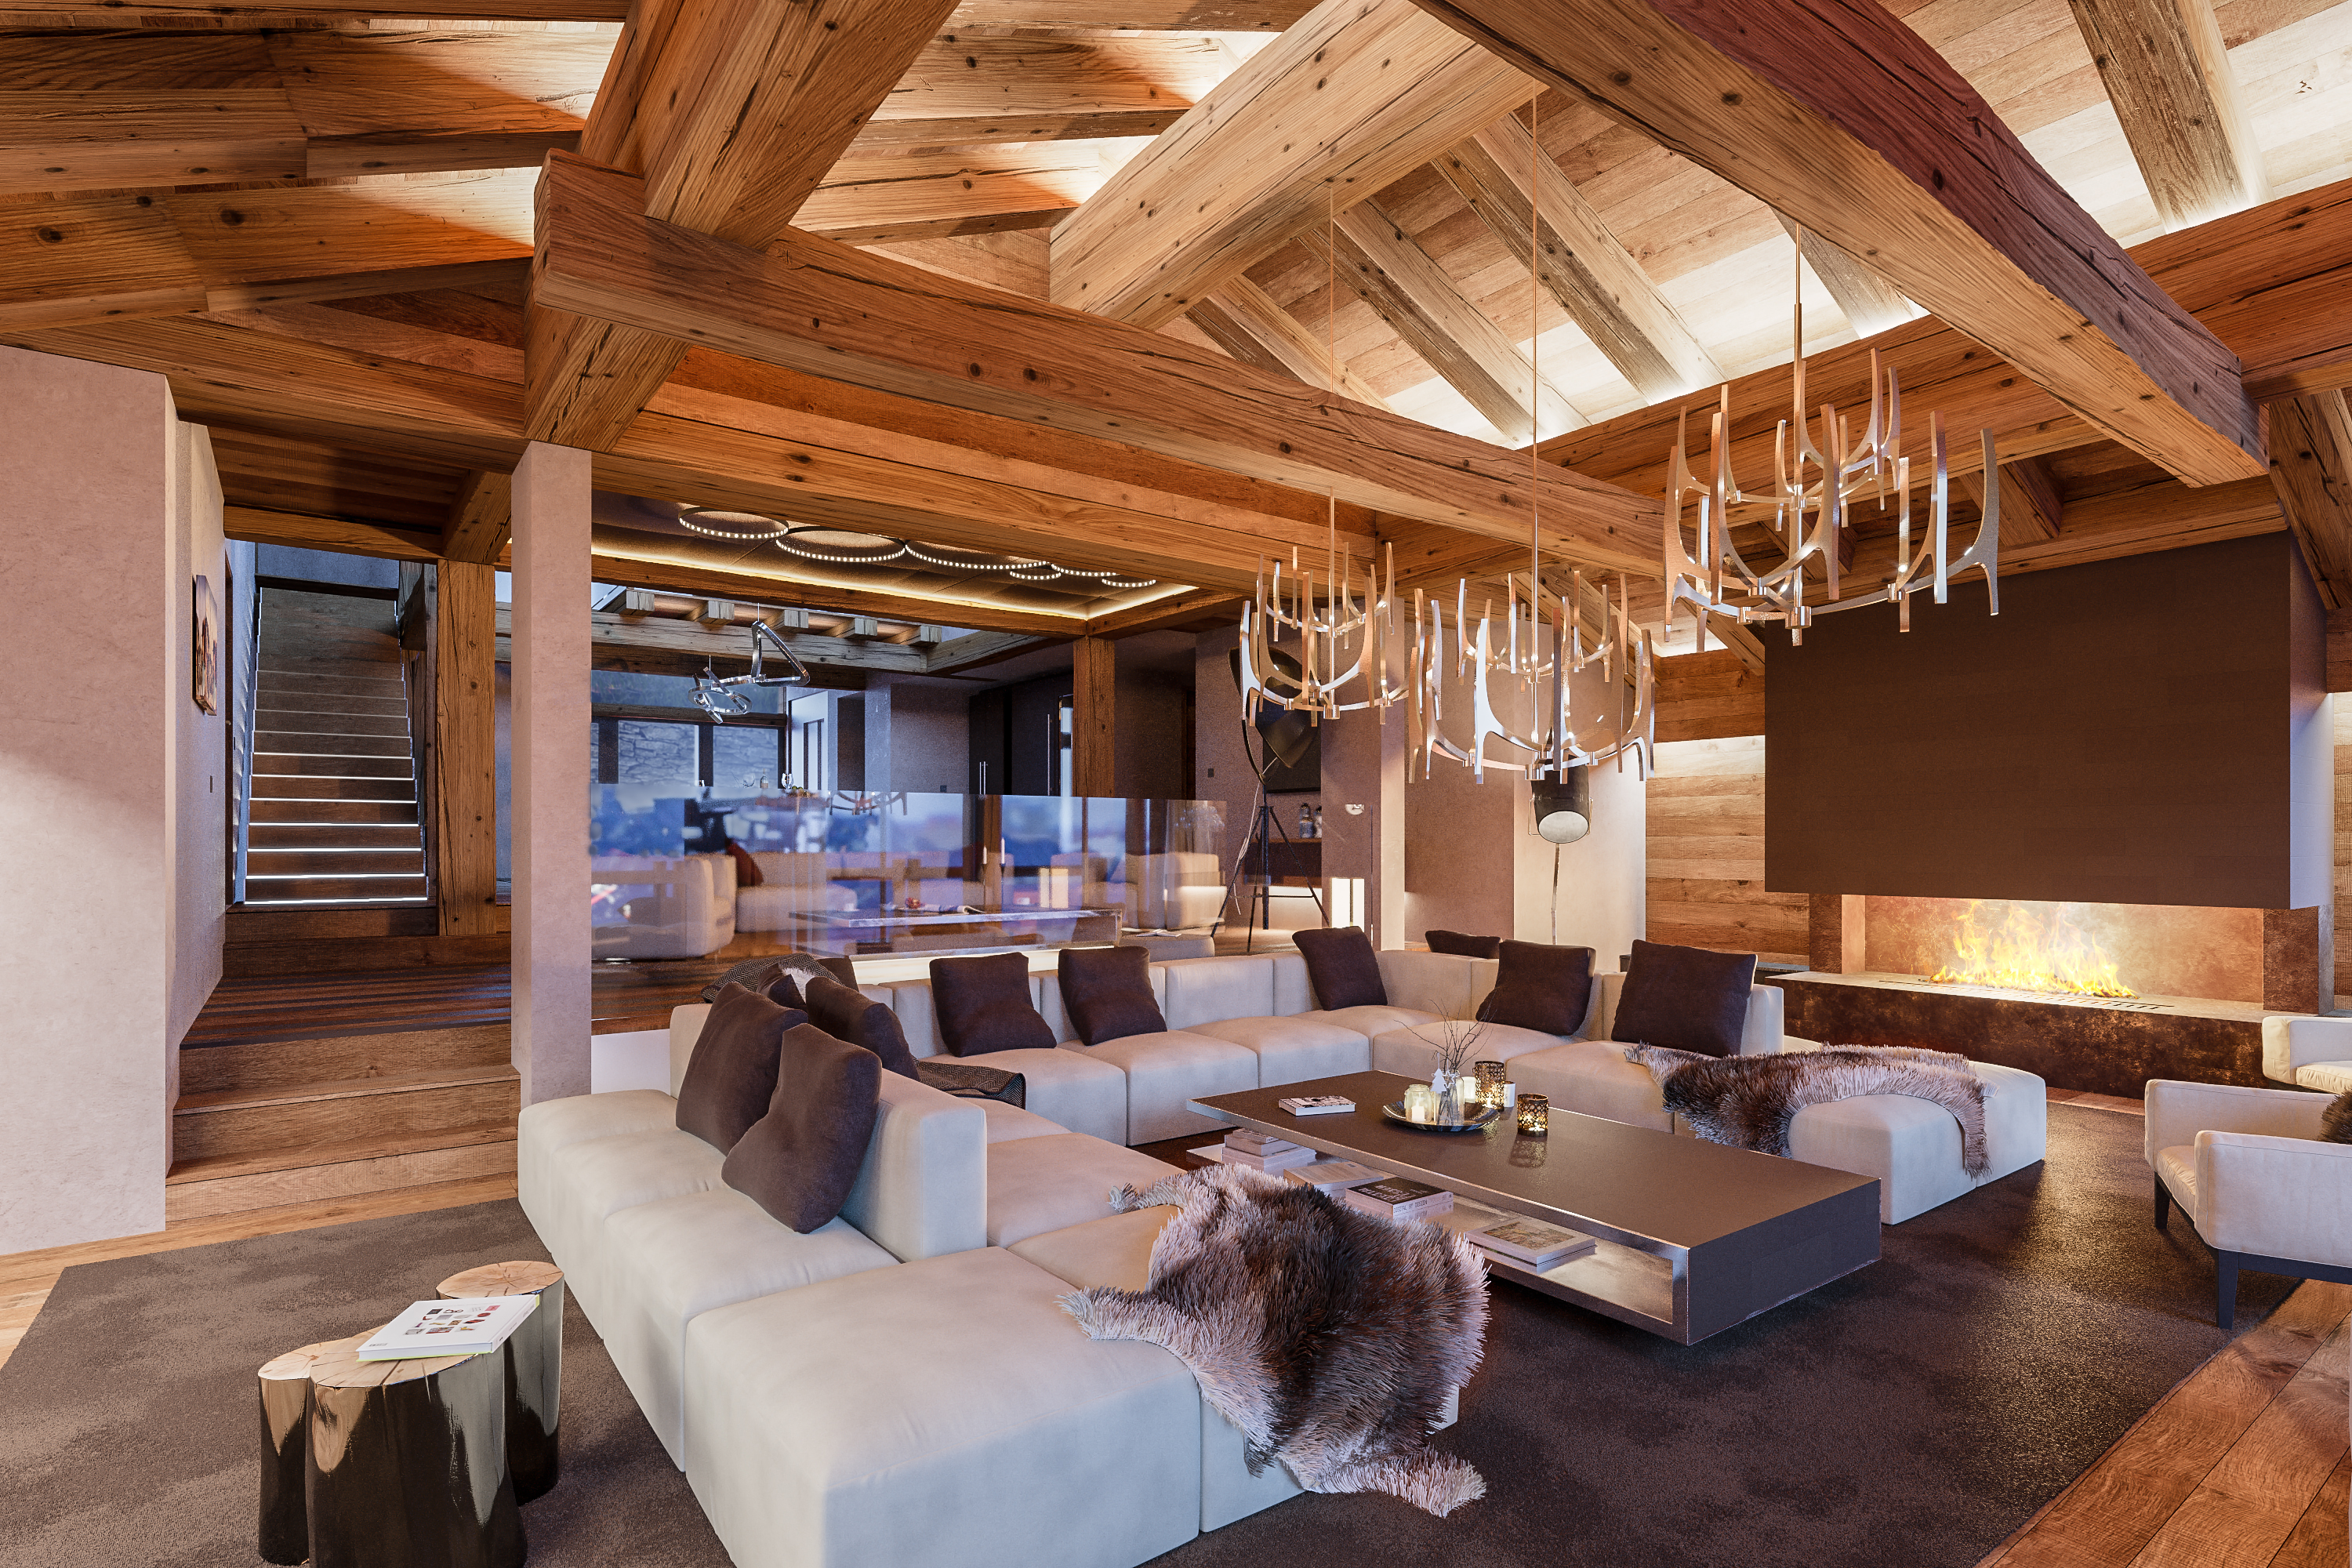 Am nagement int rieur d un chalet dans les alpes suisses for Amenagement interieur chalet